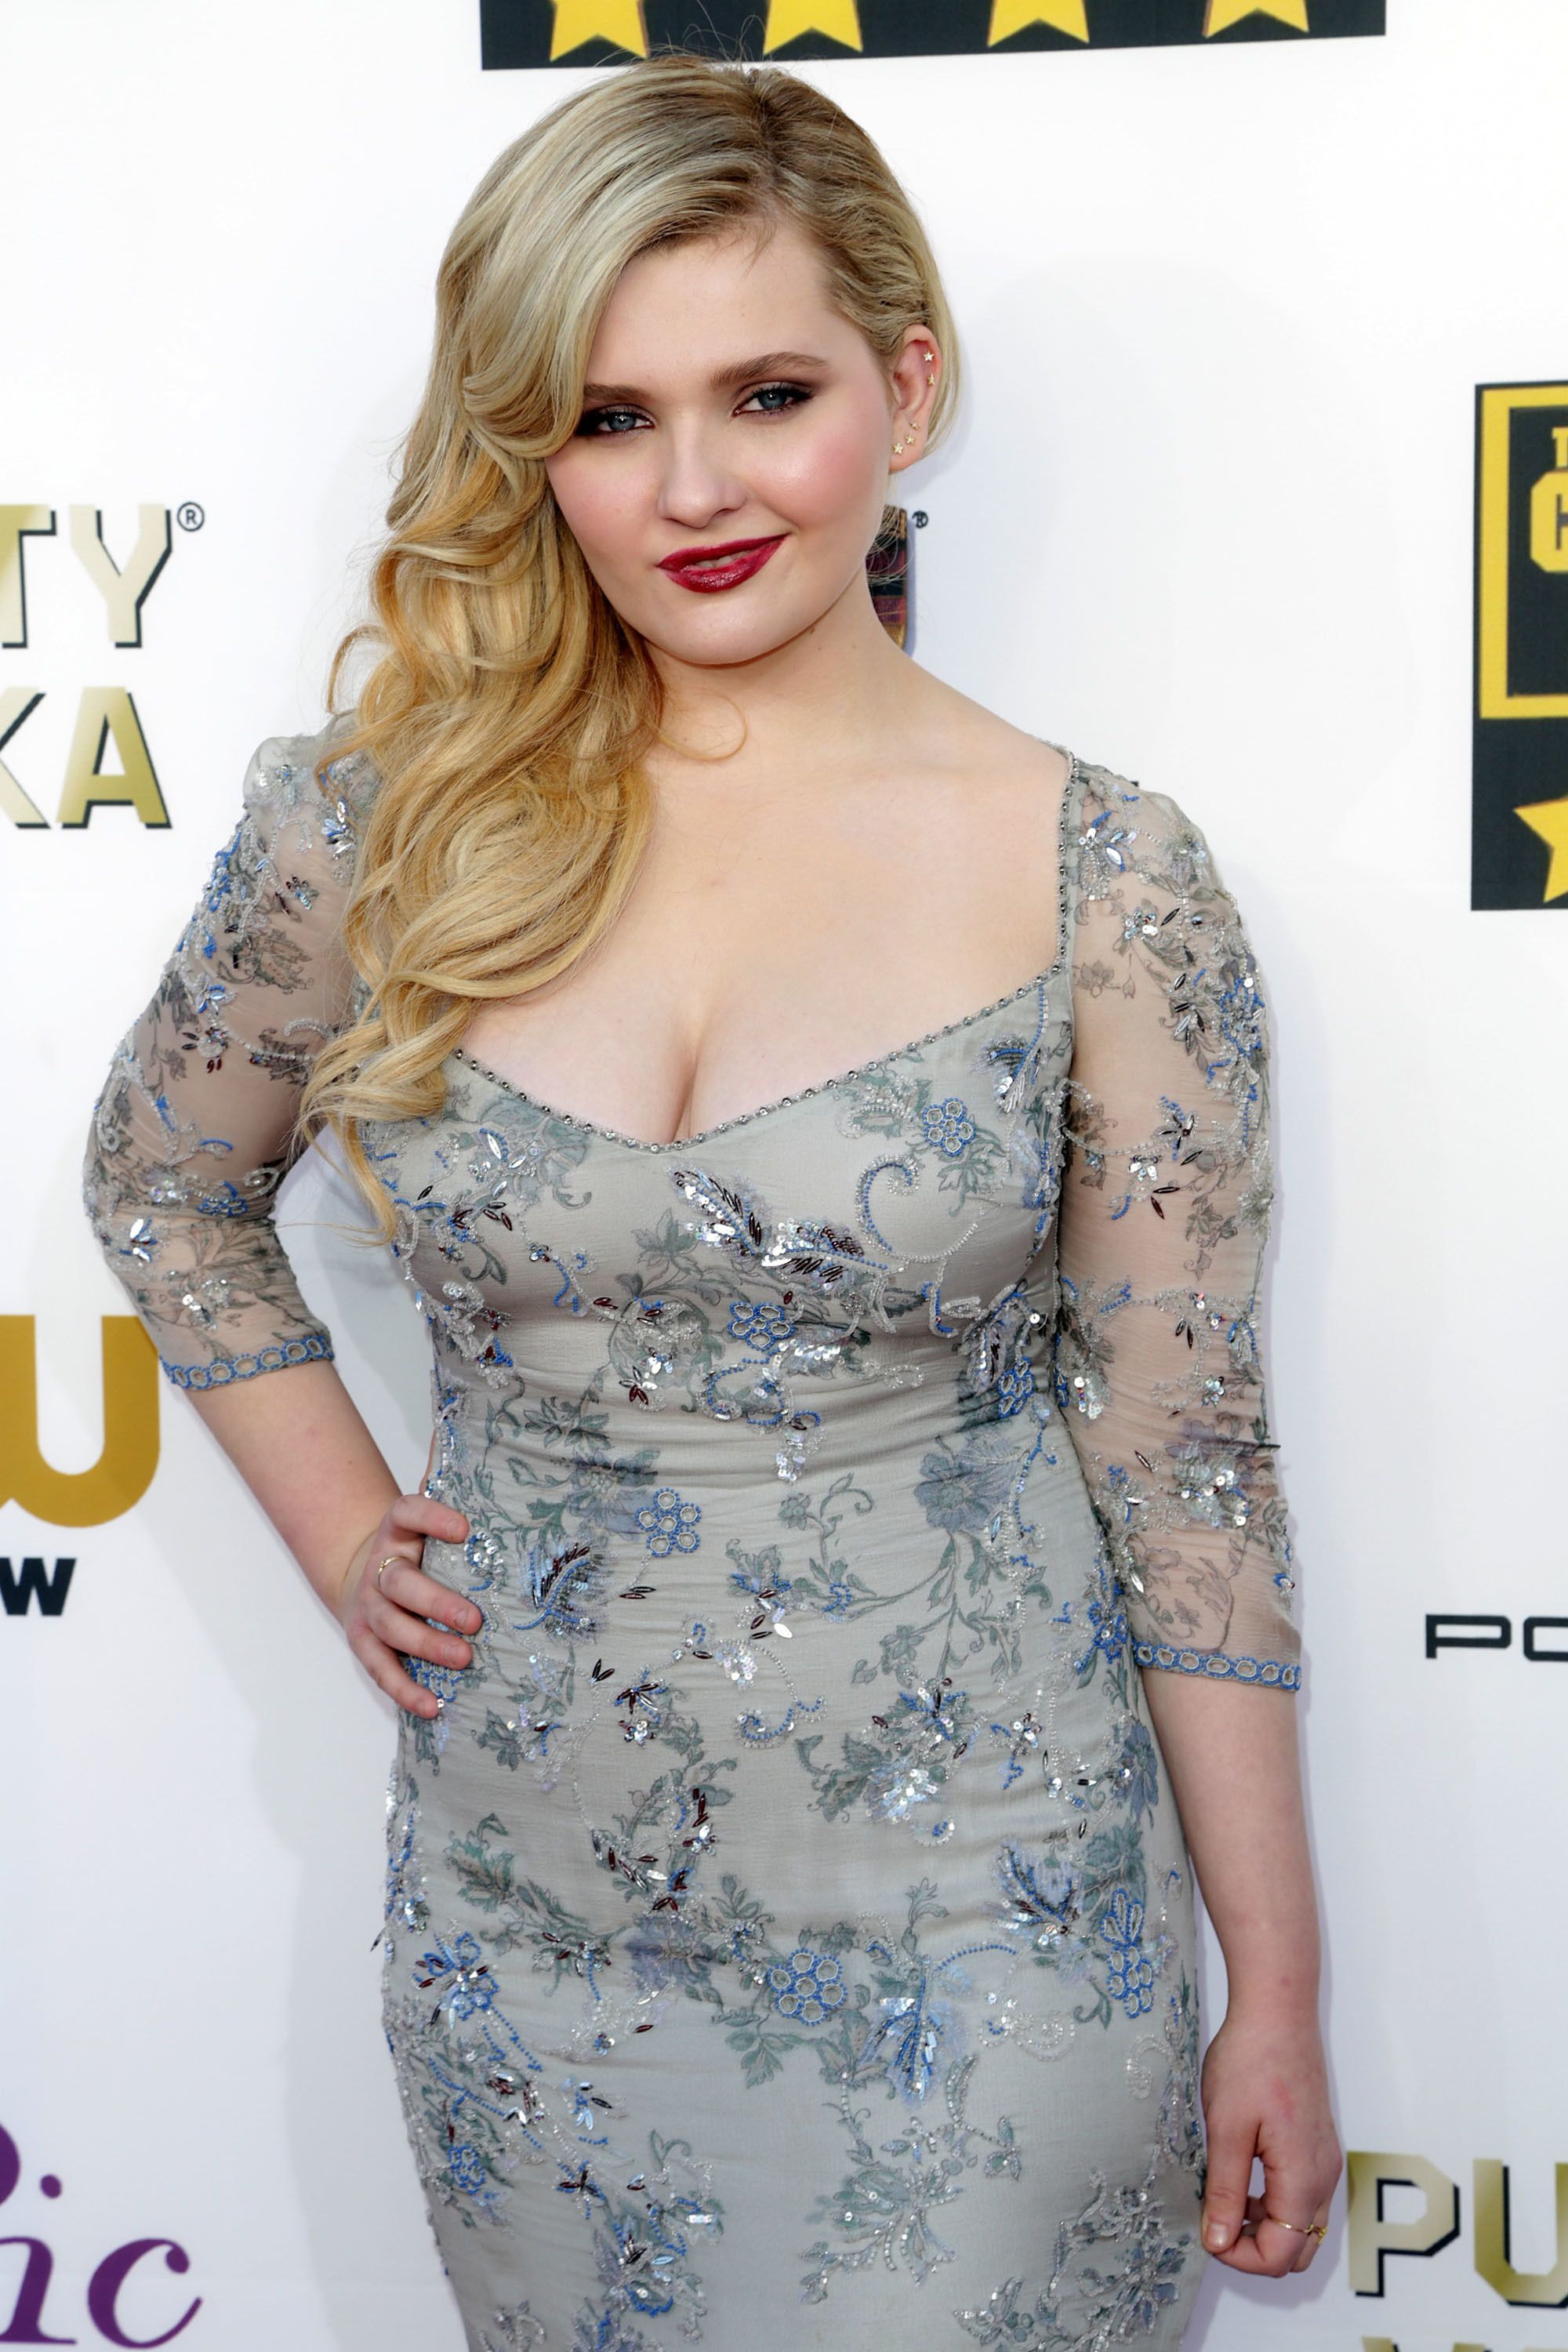 photo Abigail breslin cleavage